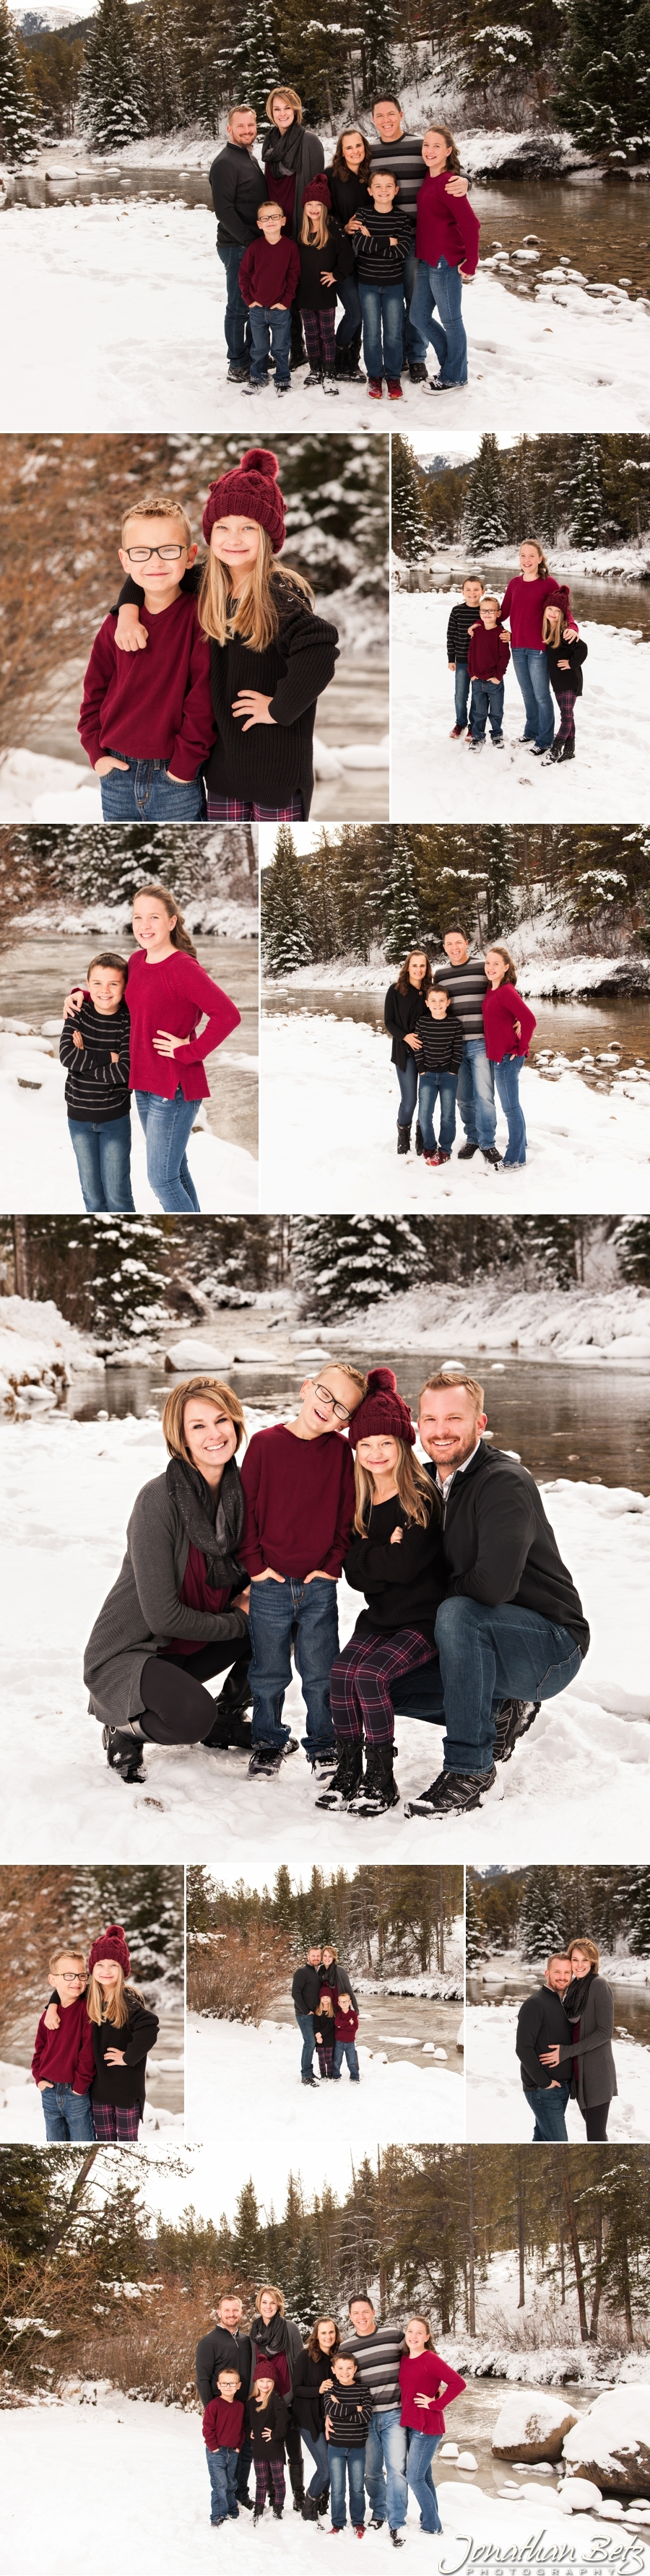 Destination Family Photographer Jonathan Betz Photography Colorado Springs Professional Photographer 1